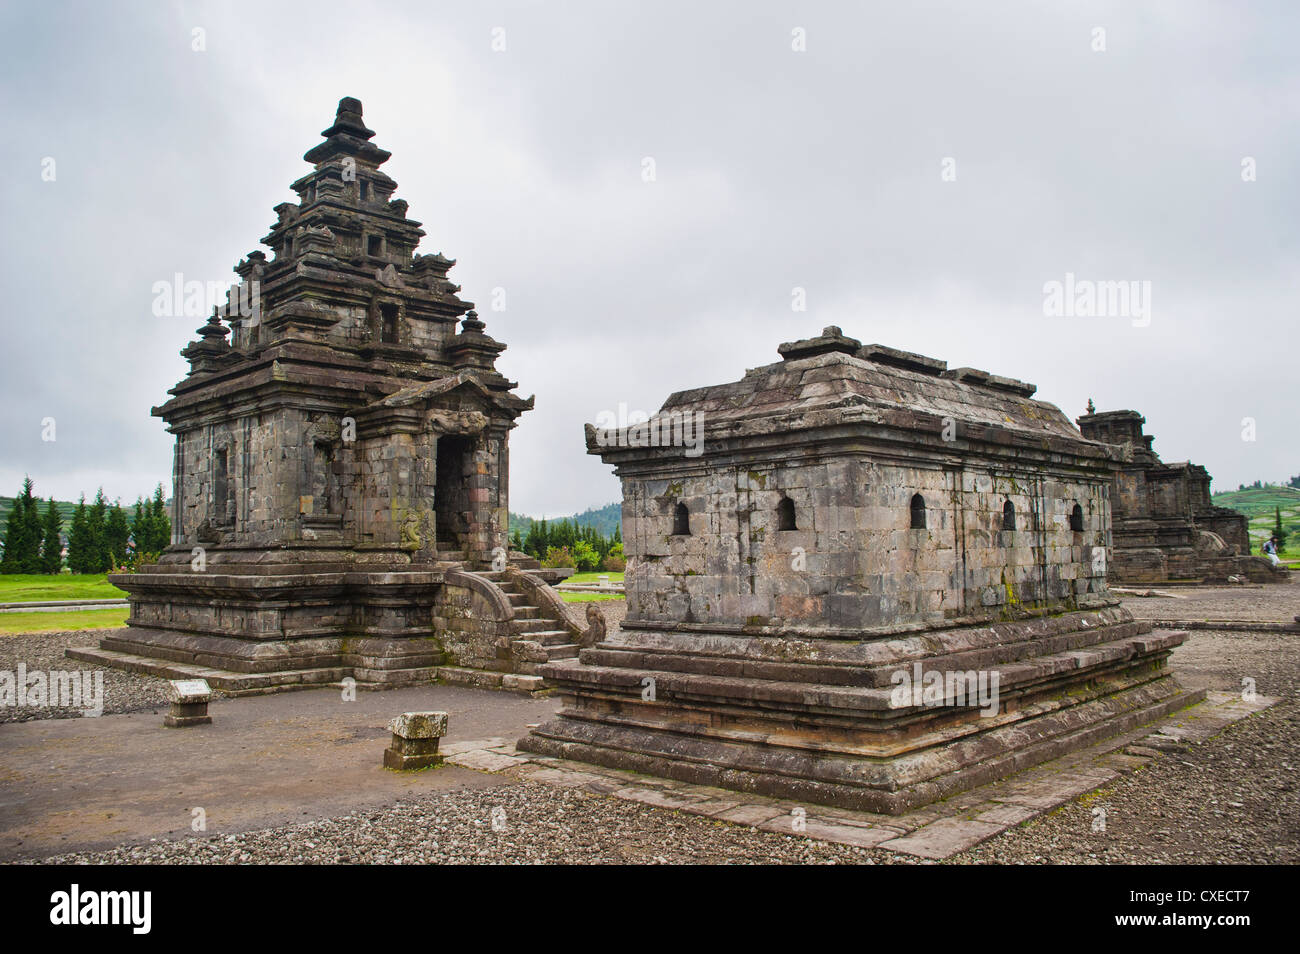 Temples at Candi Arjuna Hindu Temple Complex, Dieng Plateau, Central Java, Indonesia, Southeast Asia, Asia Stock Photo